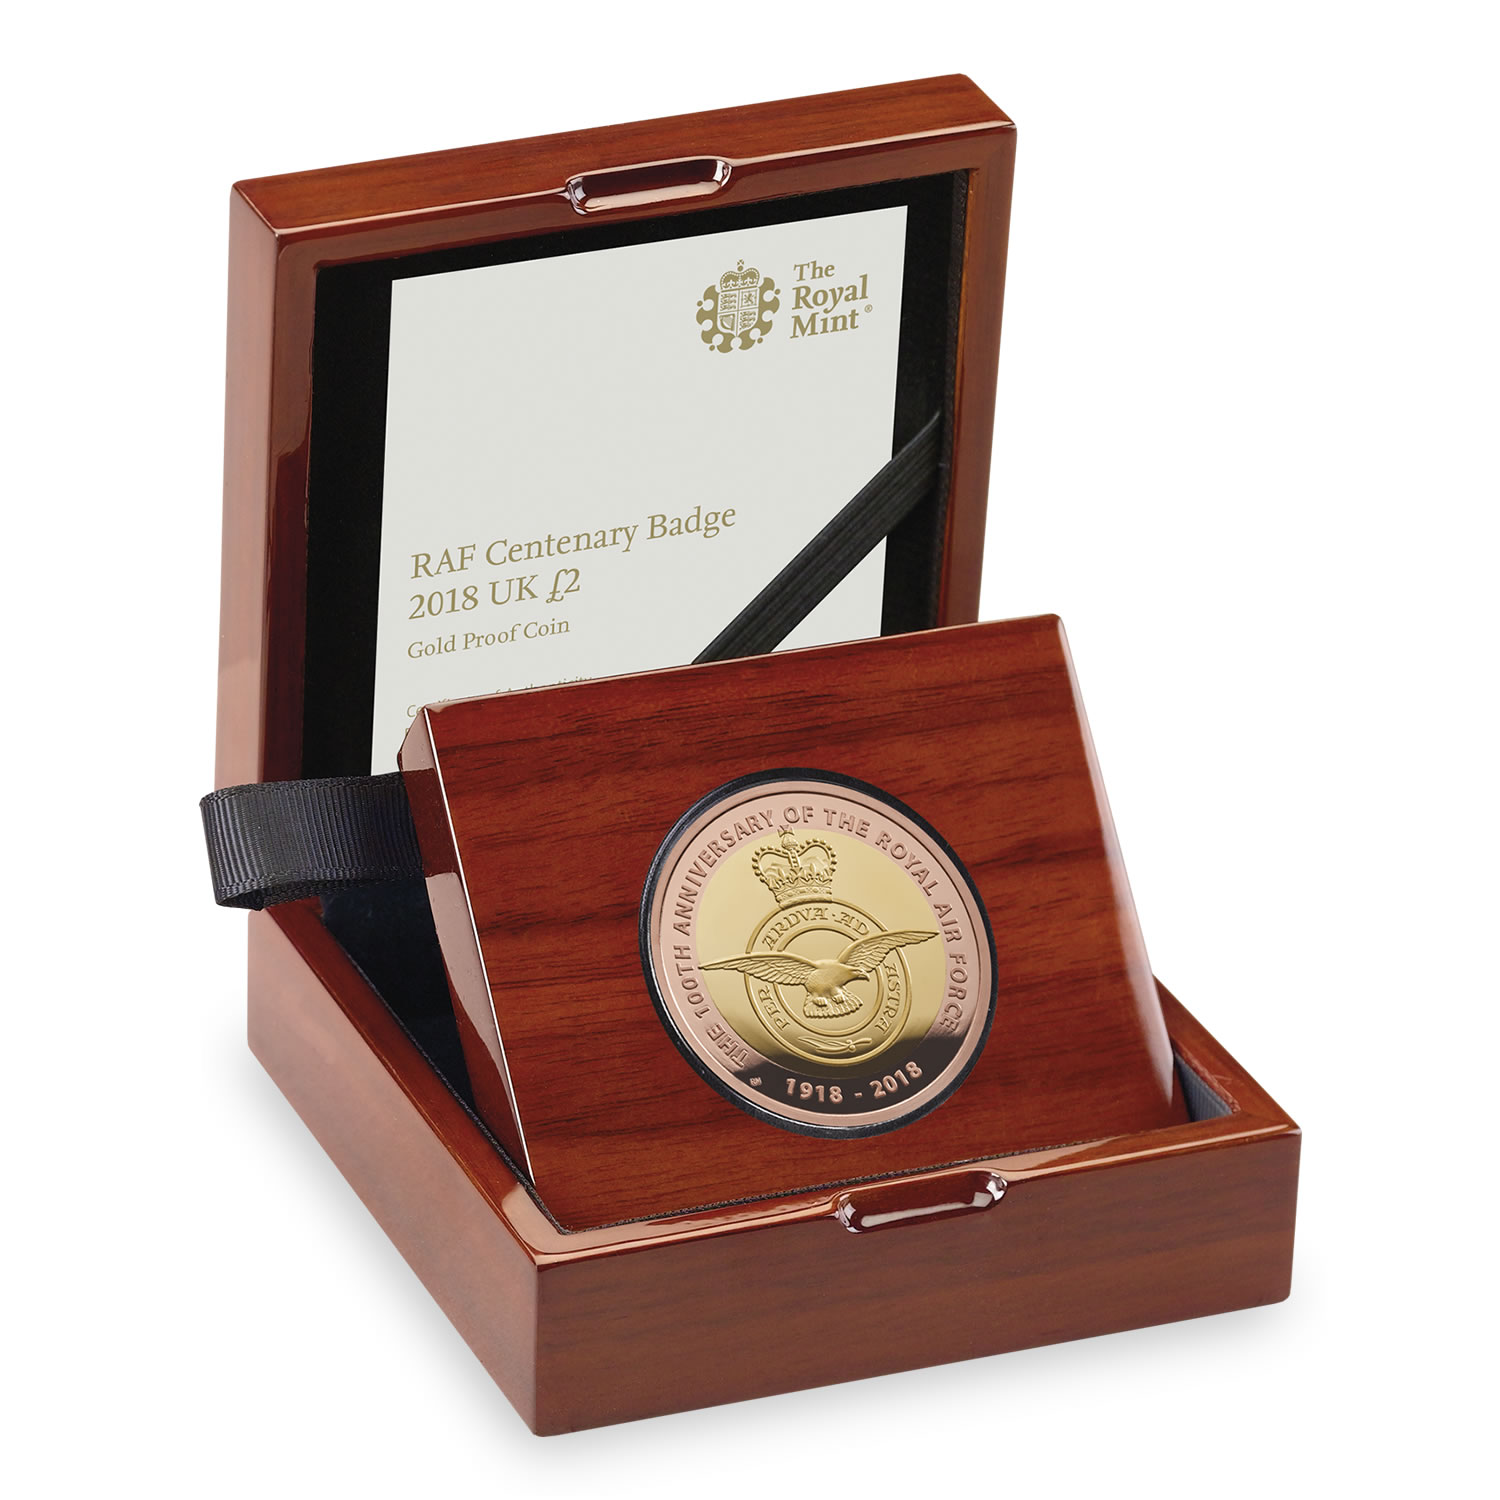 RAF Centenary Badge 2018 UK £2 Gold Proof Coin